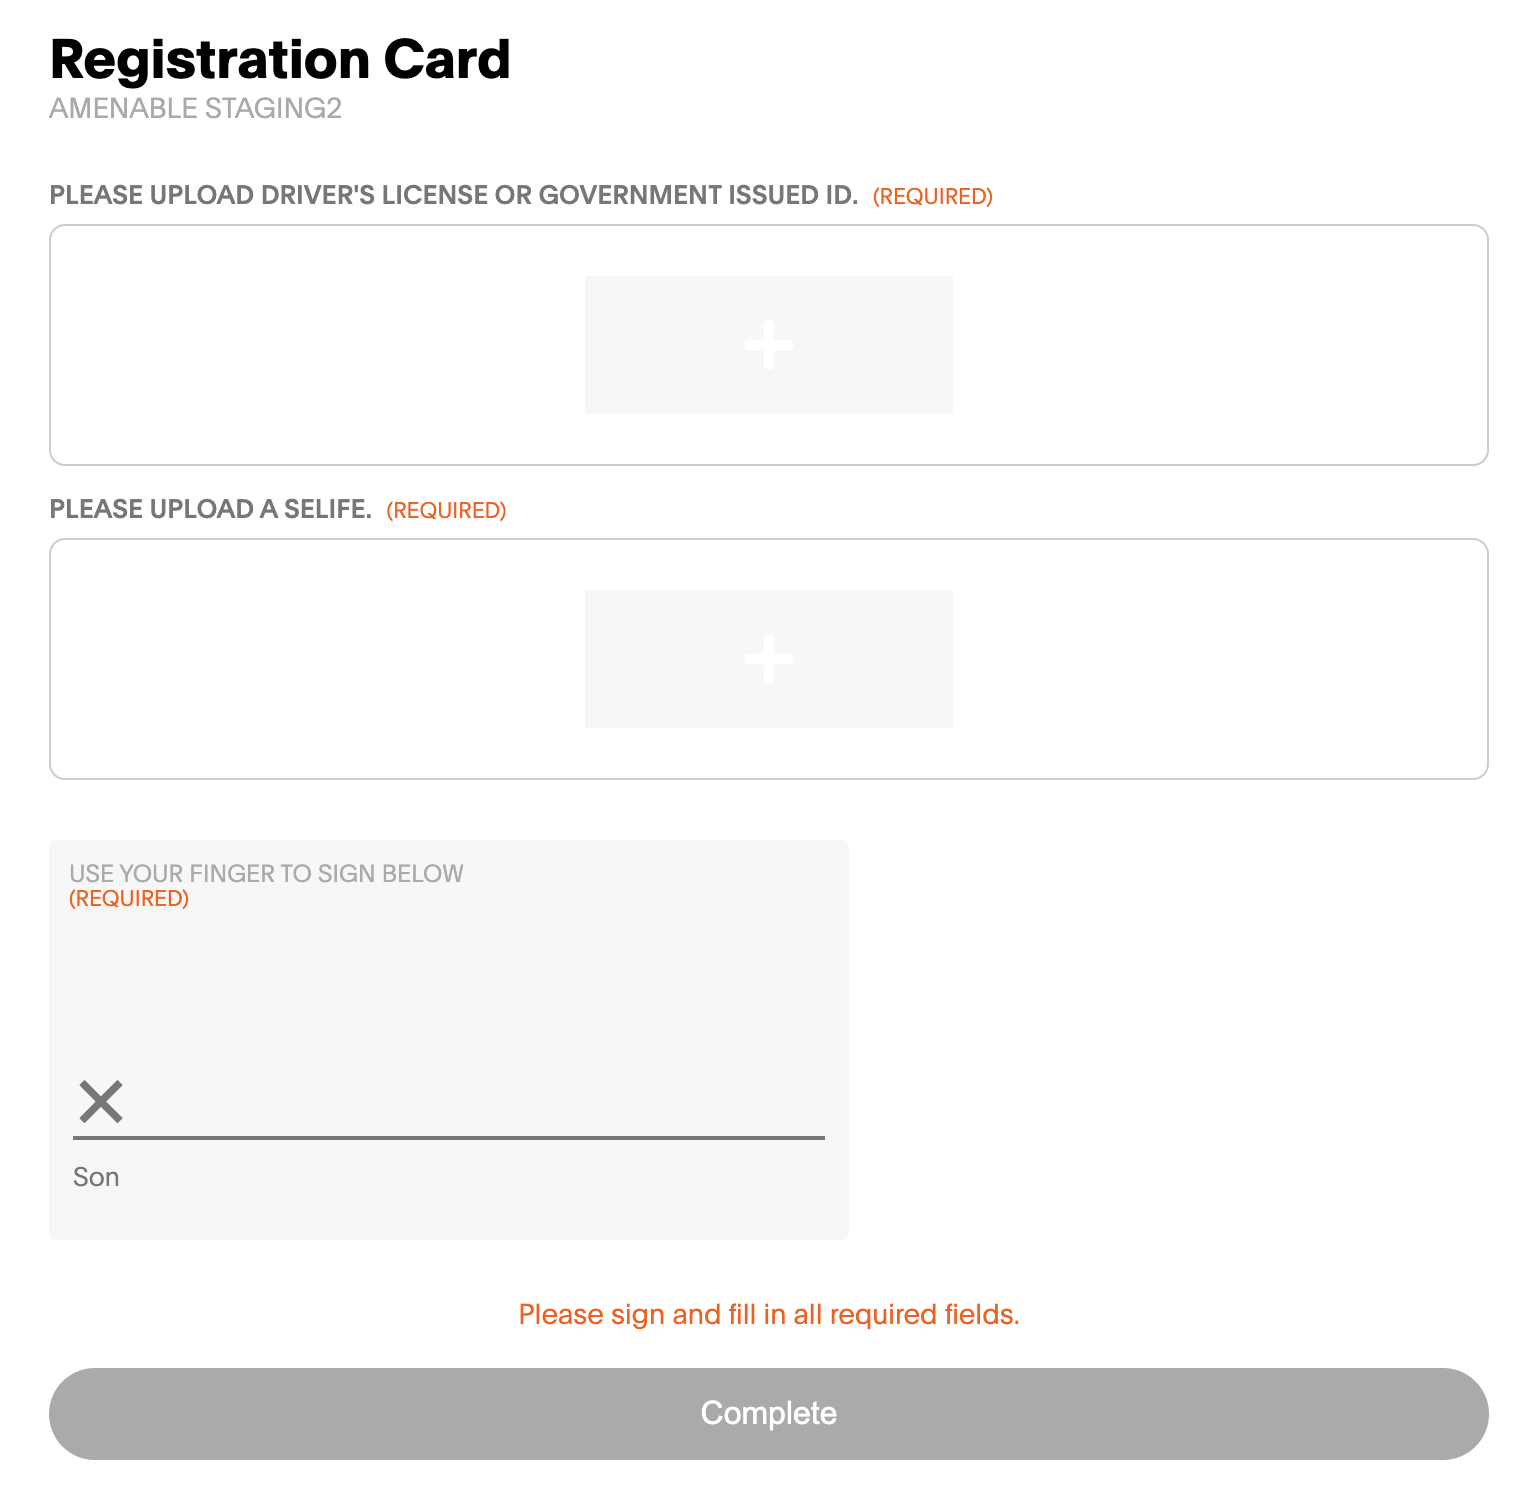 new inputs on the digital registration card to allow for multiple image uploads